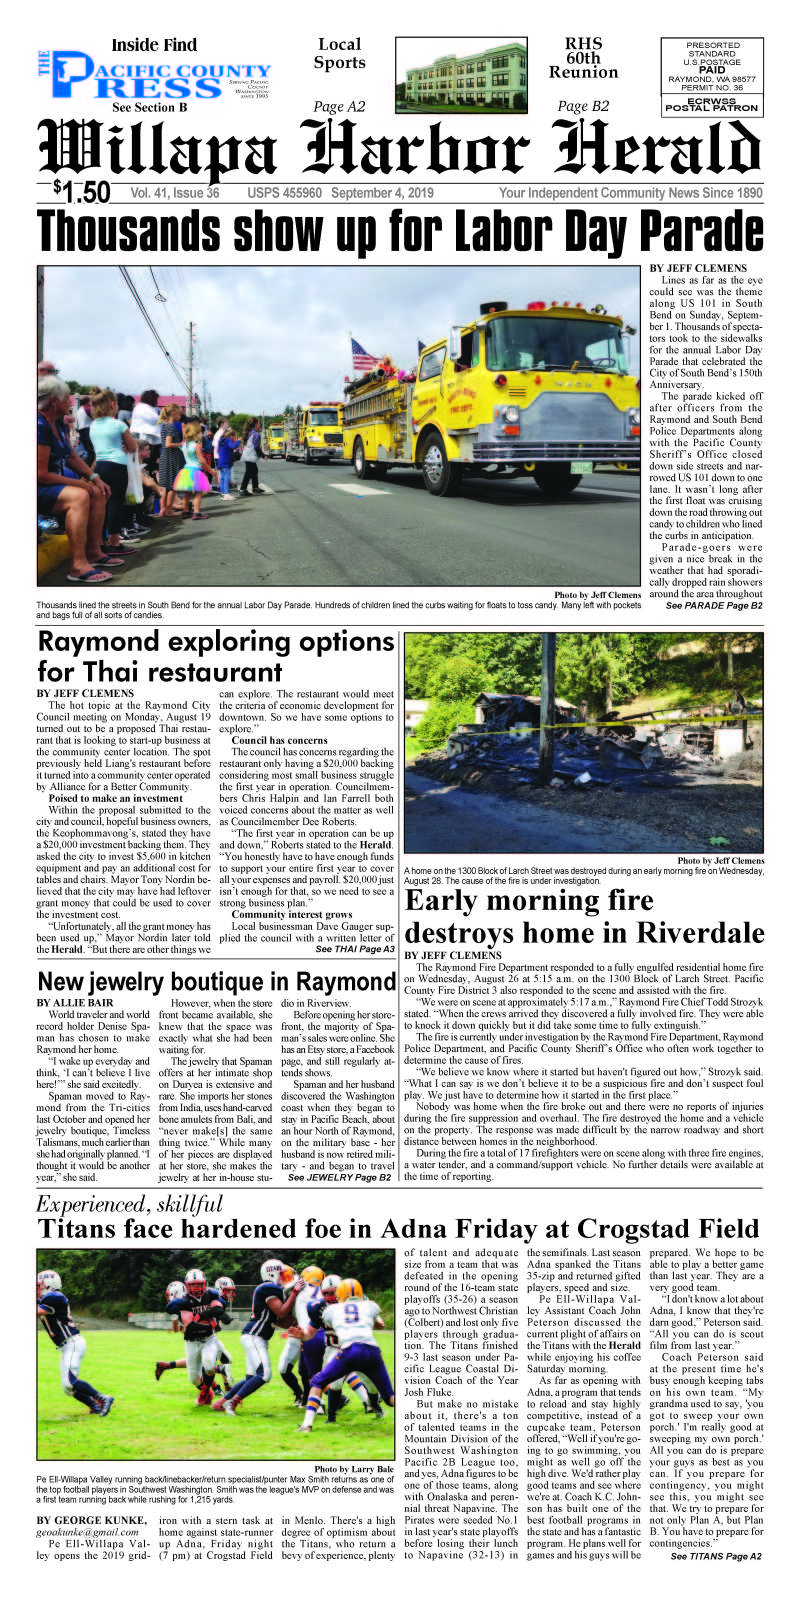 September 4, 2019 Willapa Harbor Herald and Pacific County Press